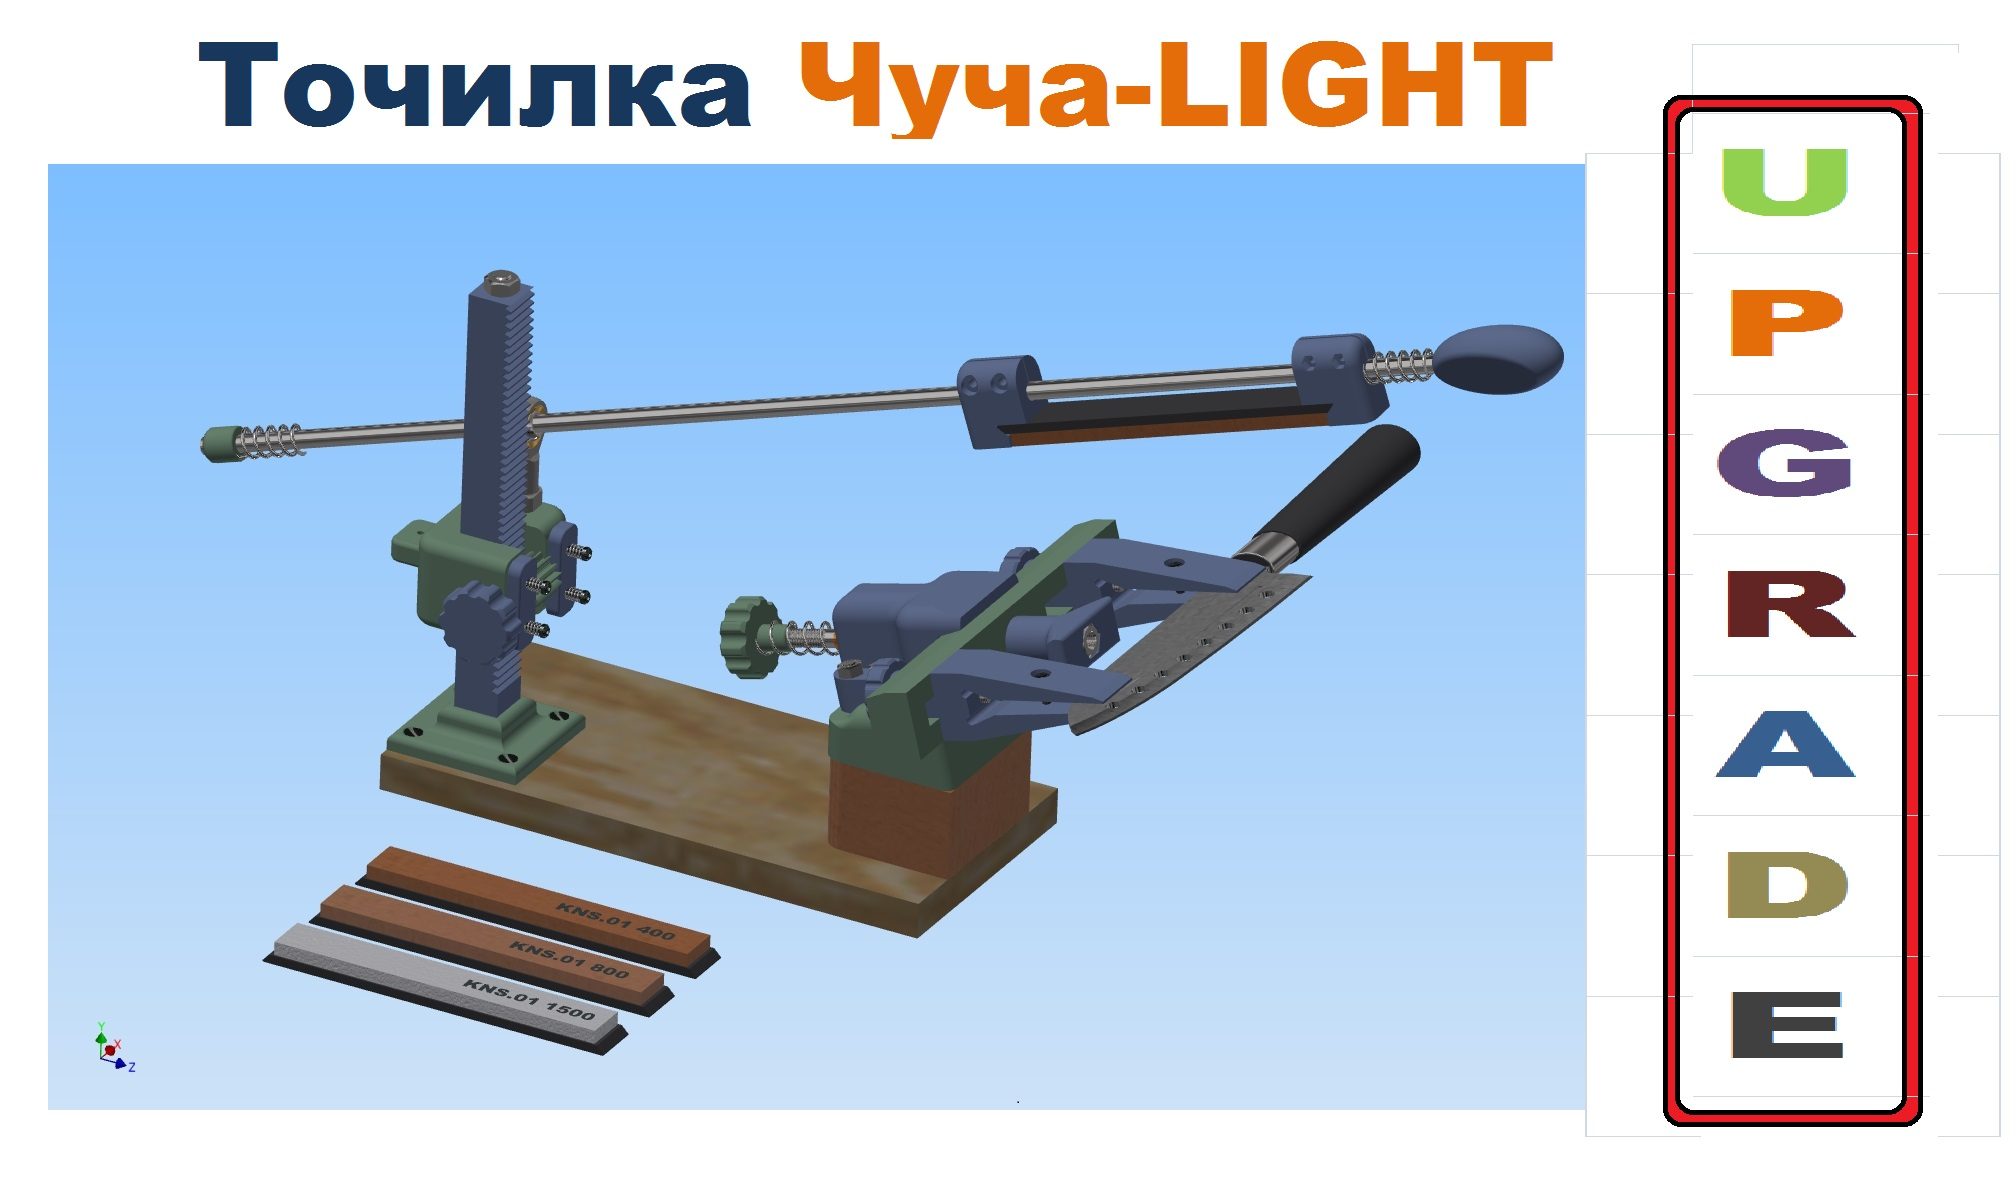 Сhucha-LIGHT sharpener upgrades, stl files